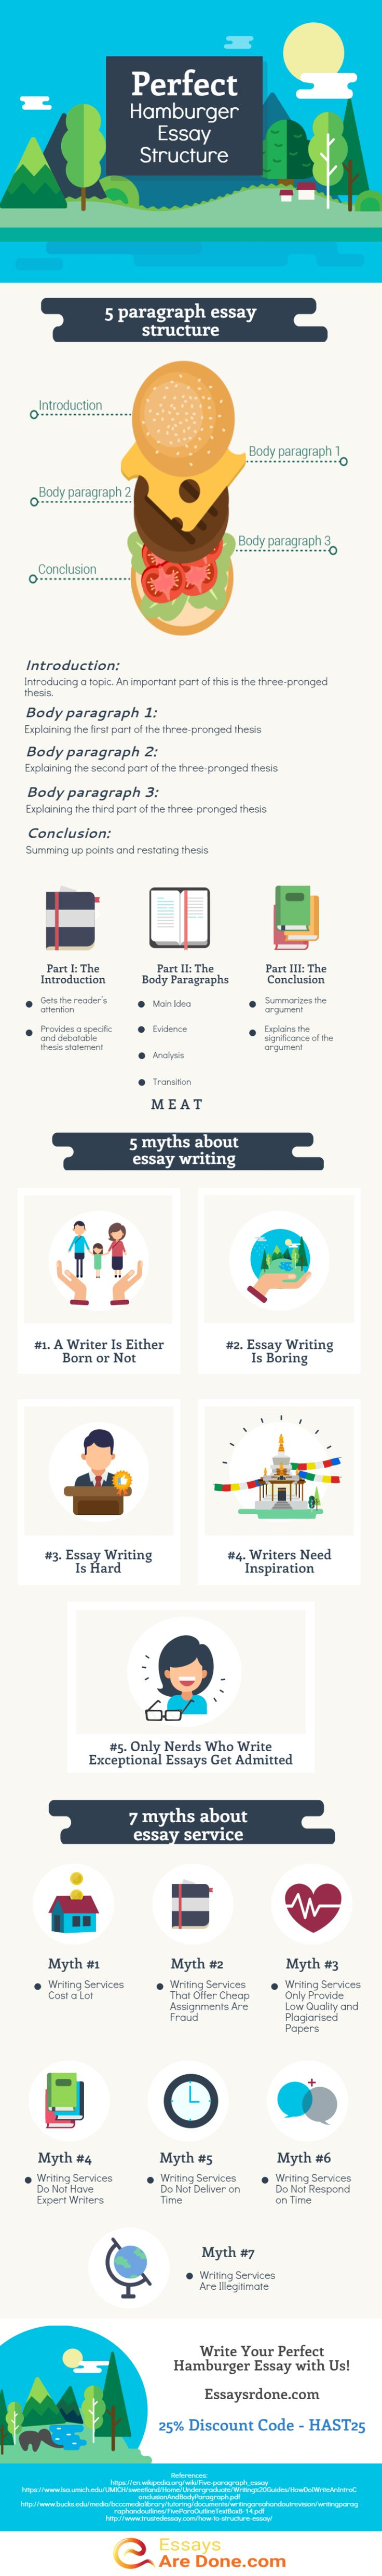 best ideas about essay structure essay writing essaysrdone com perfect hamburger essay